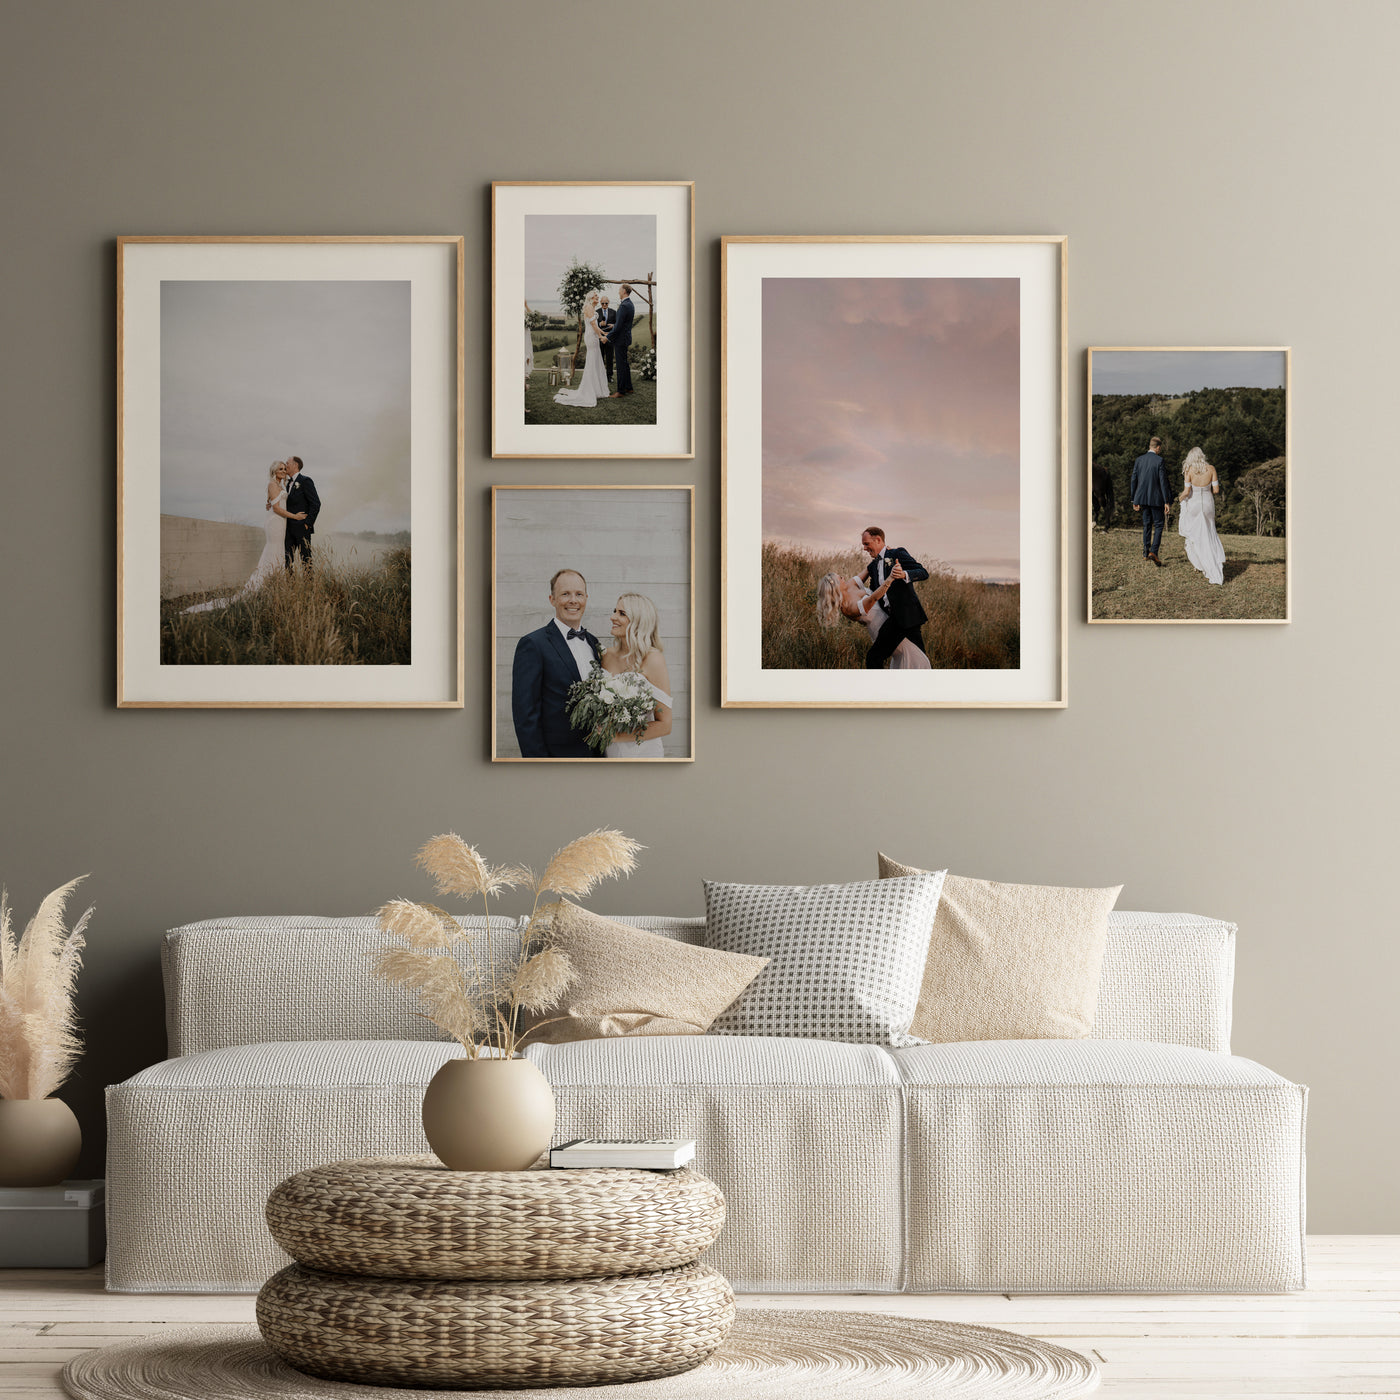 FRAMED PERSONAL PHOTOS GALLERY WALL